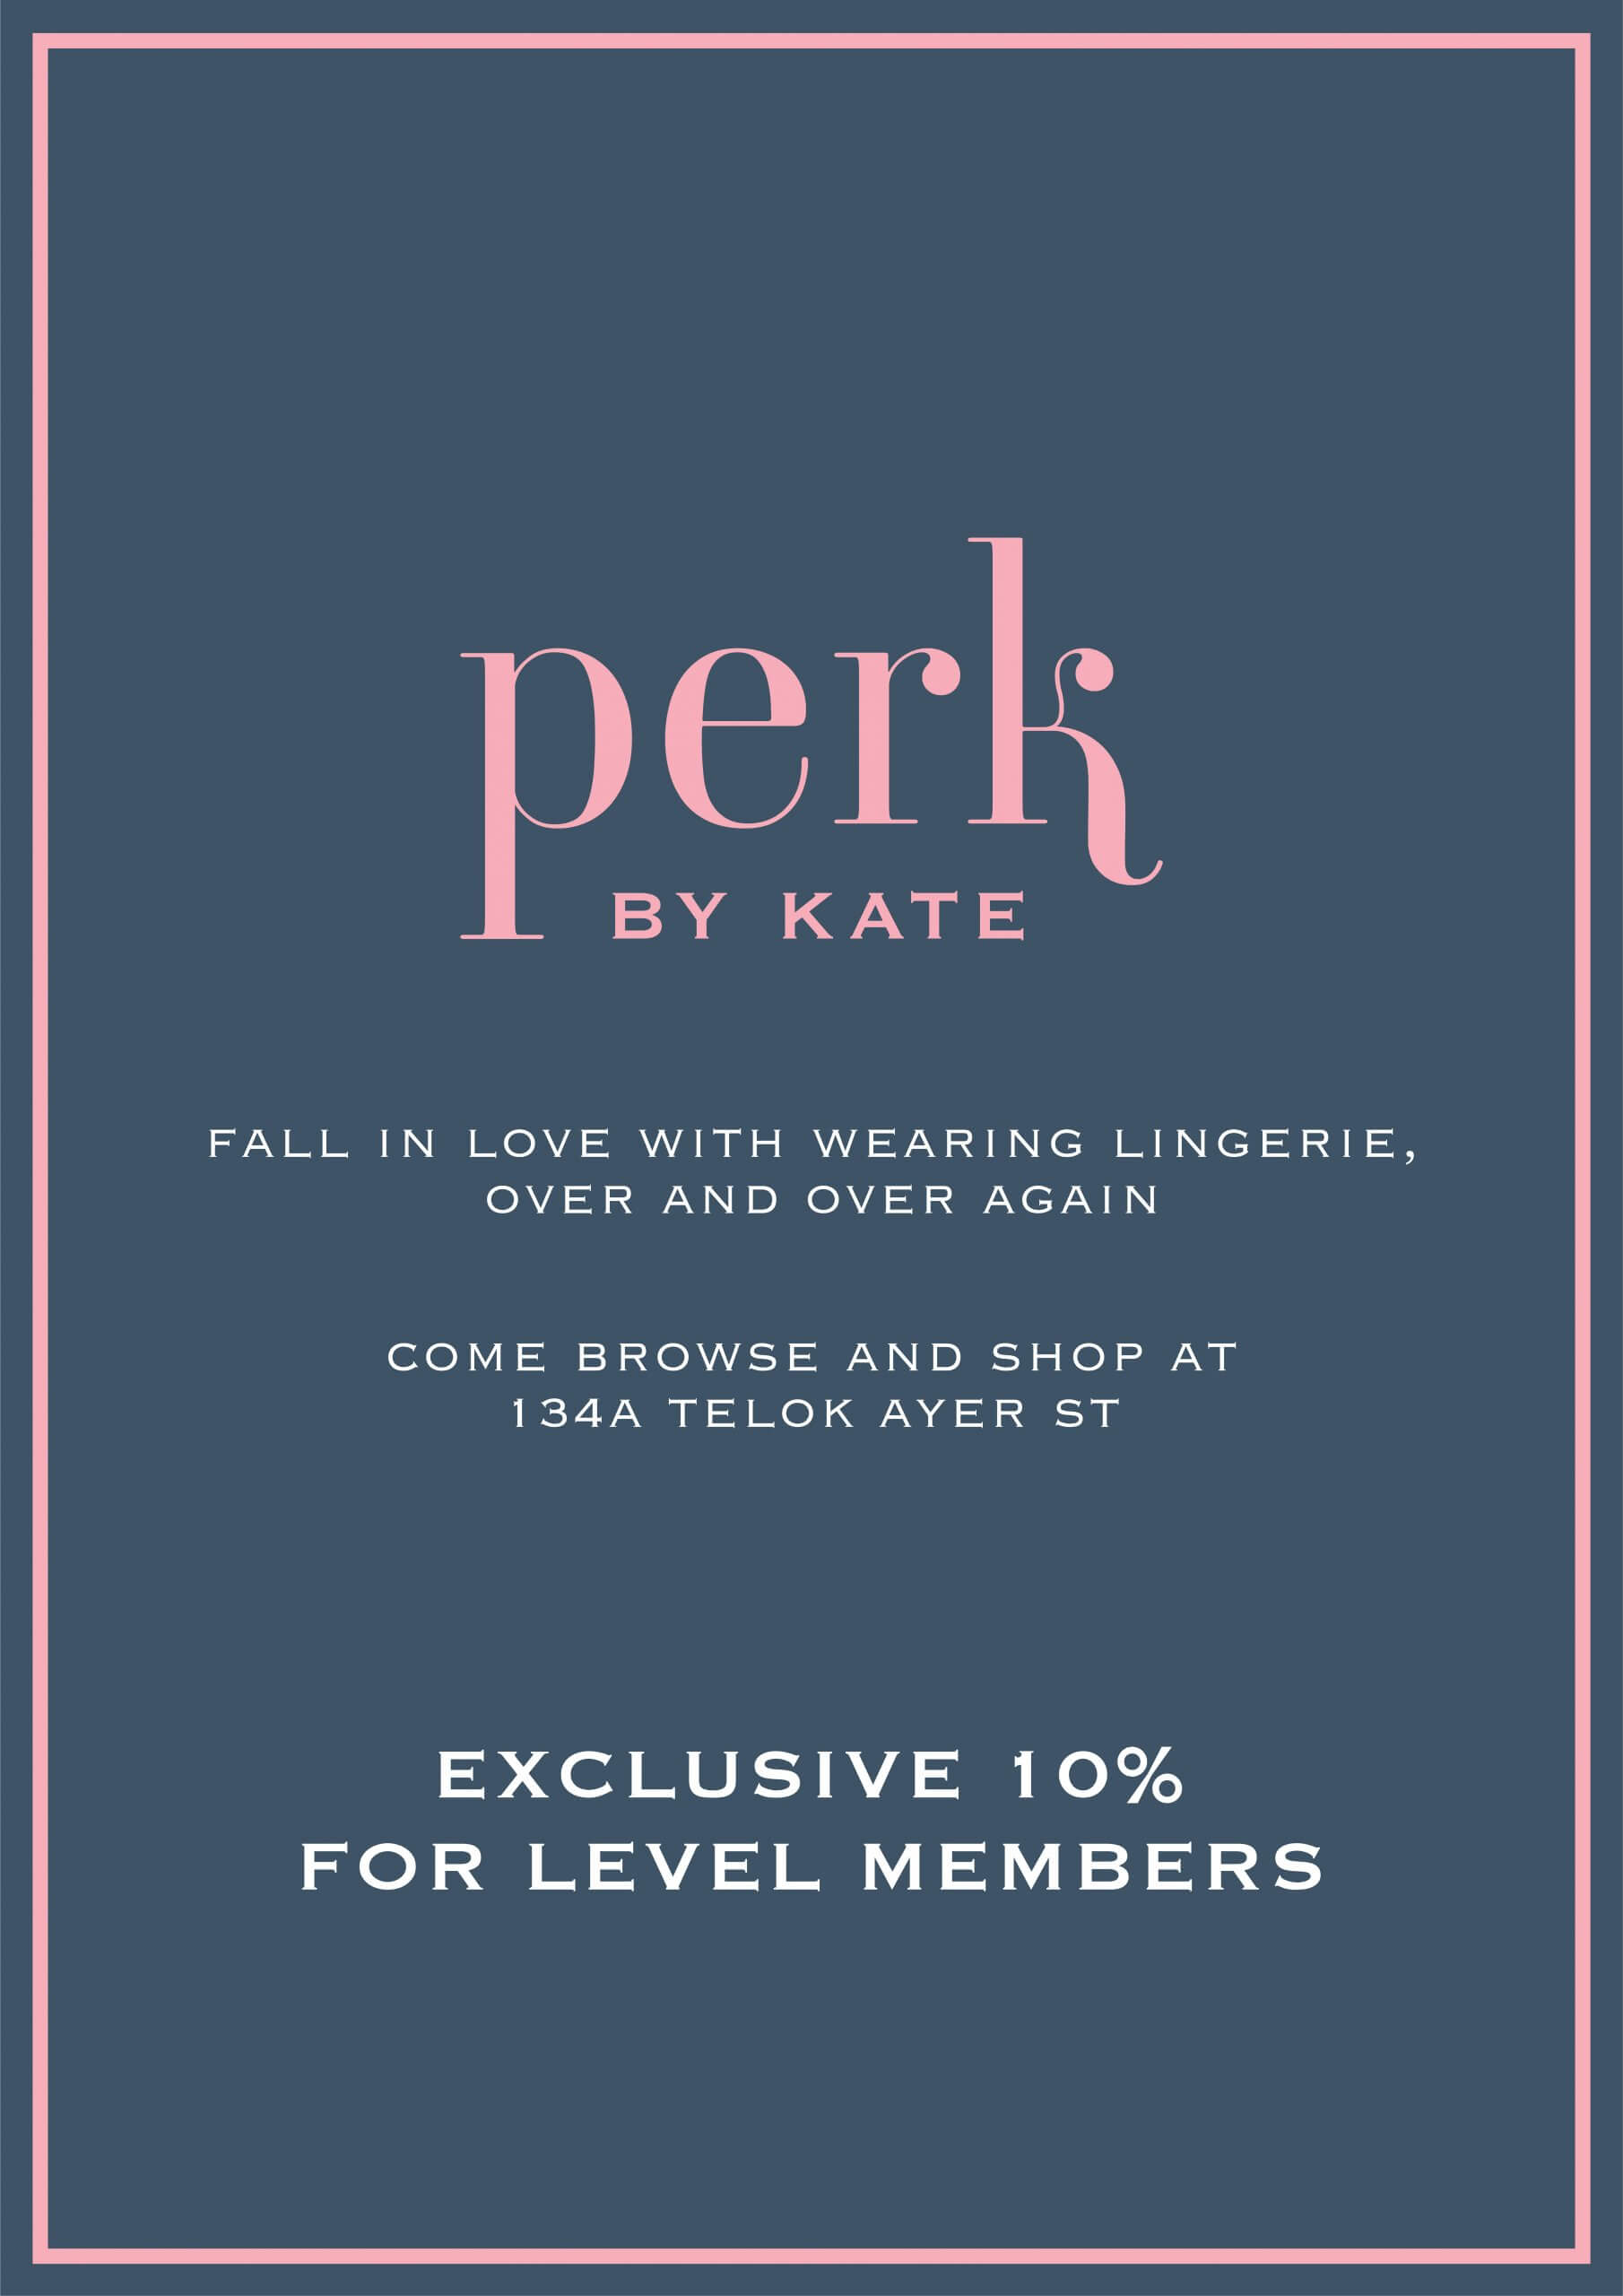 Perk by Kate for Level